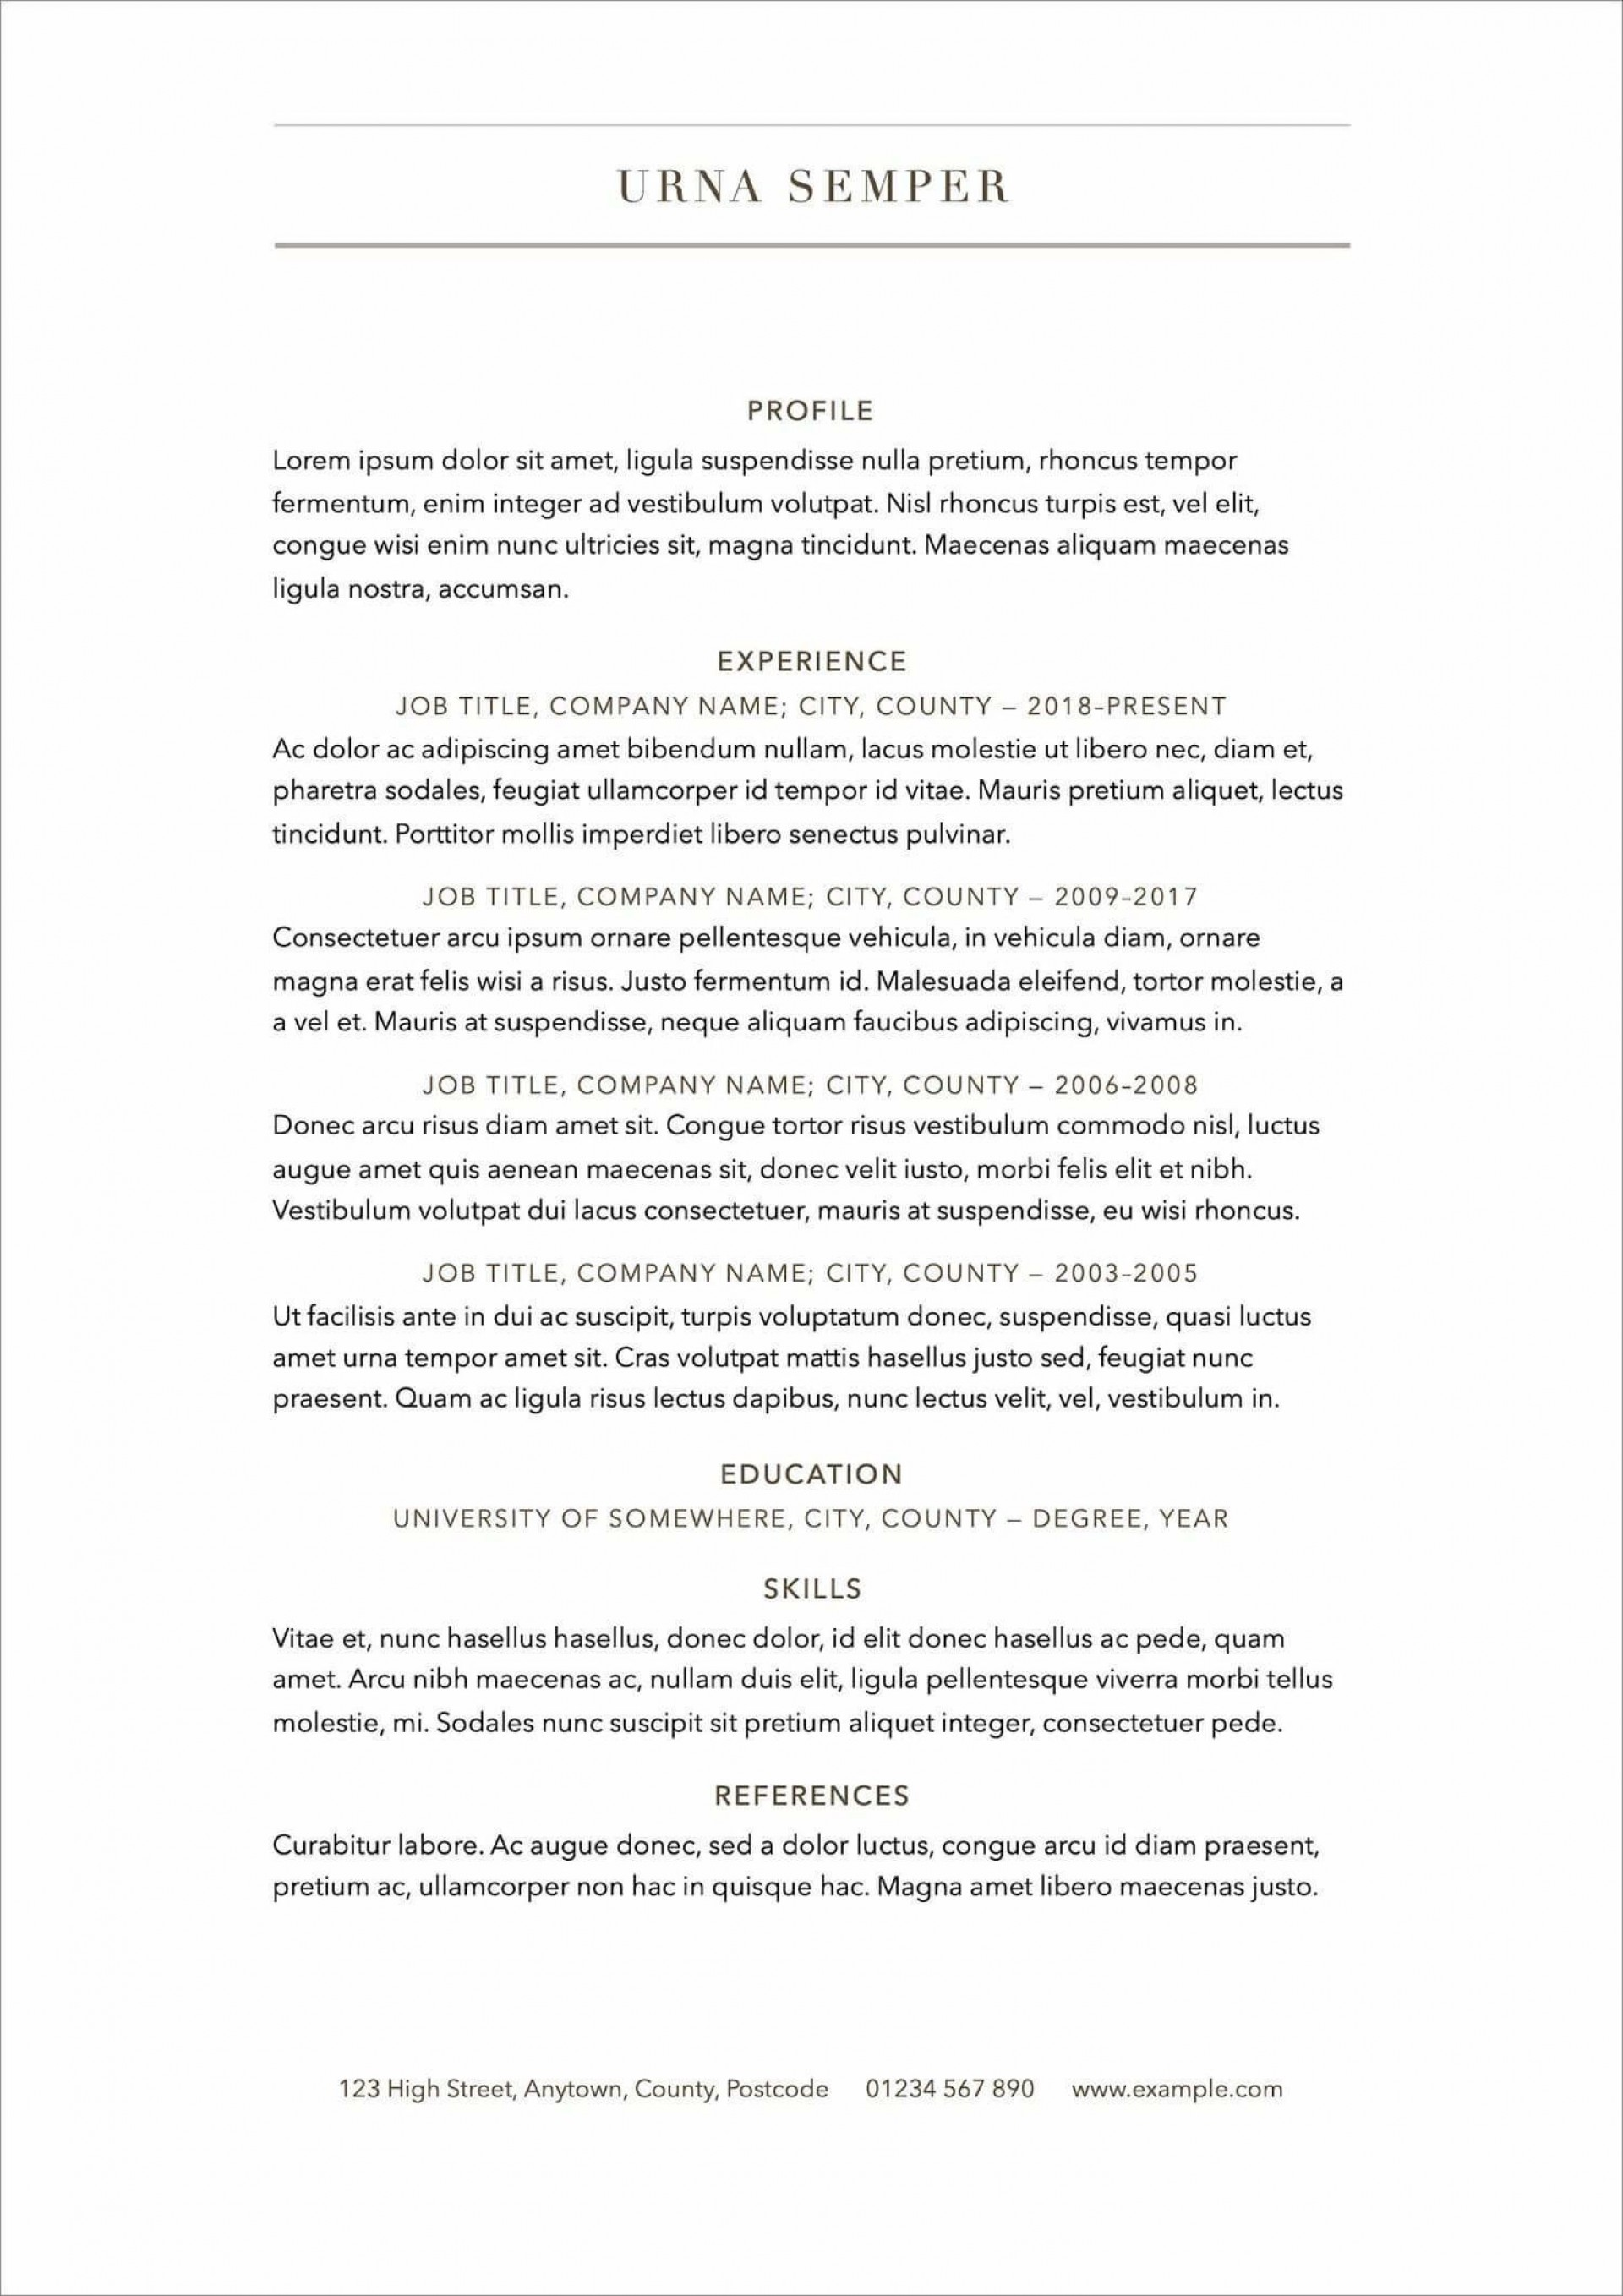 006 Surprising Free Printable Resume Template 2018 High Definition 1920